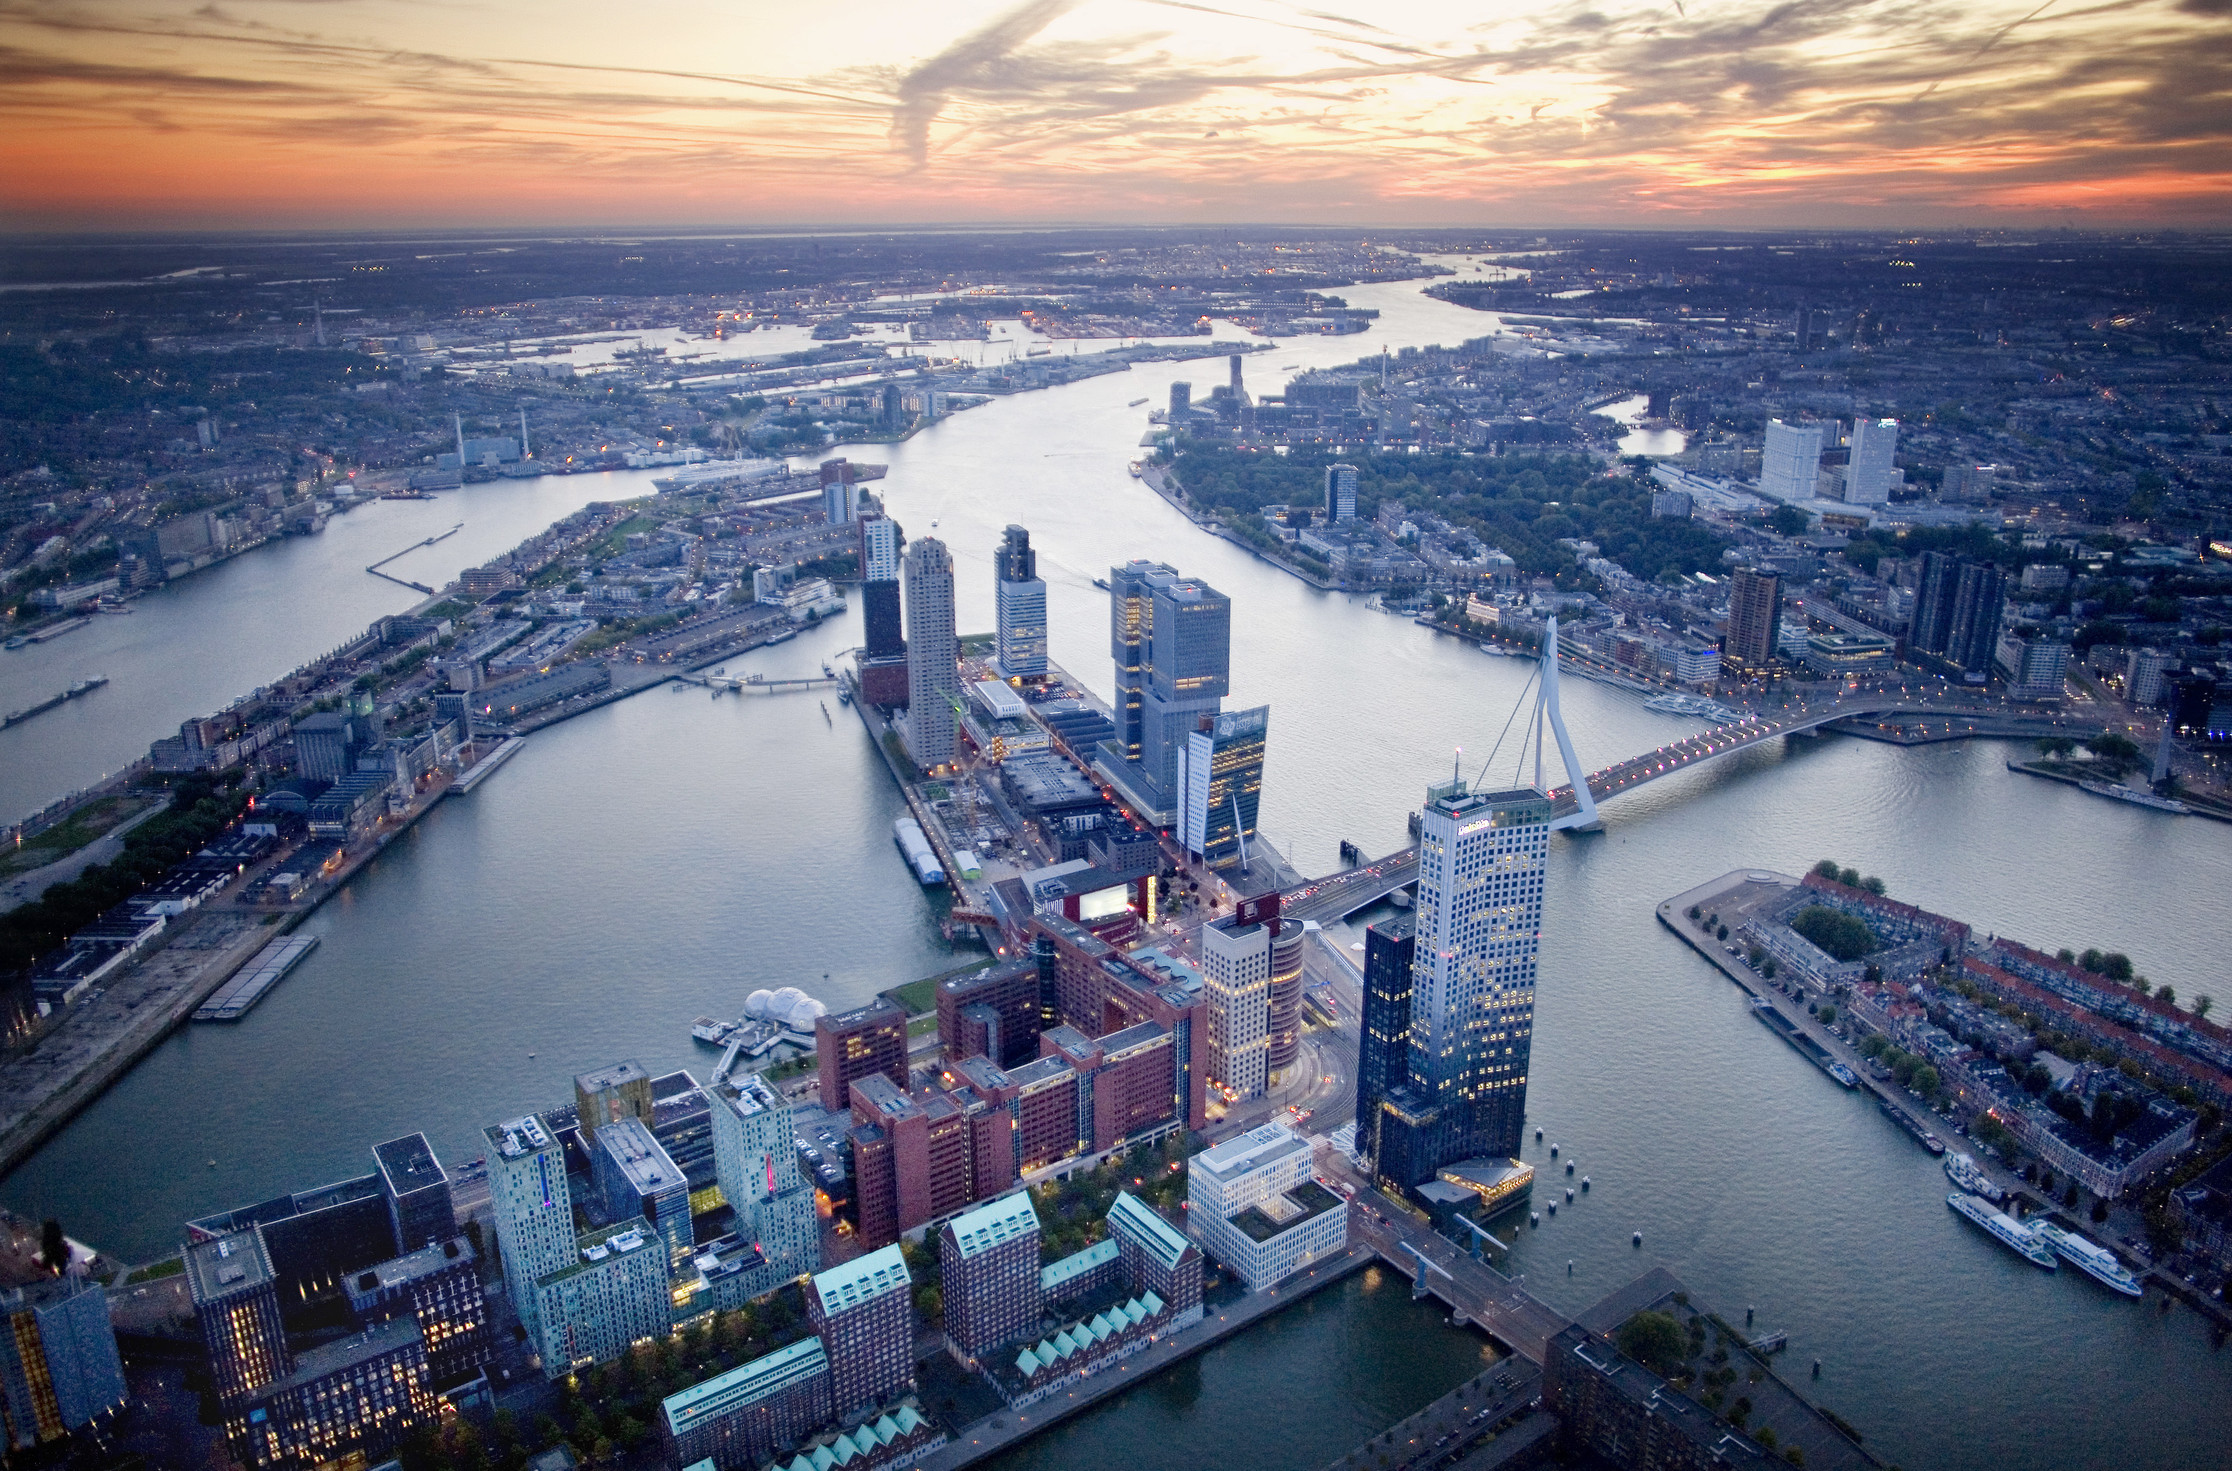 Rotterdam's Make it Happen spirit makes it an ideal location to future-proof your maritime business